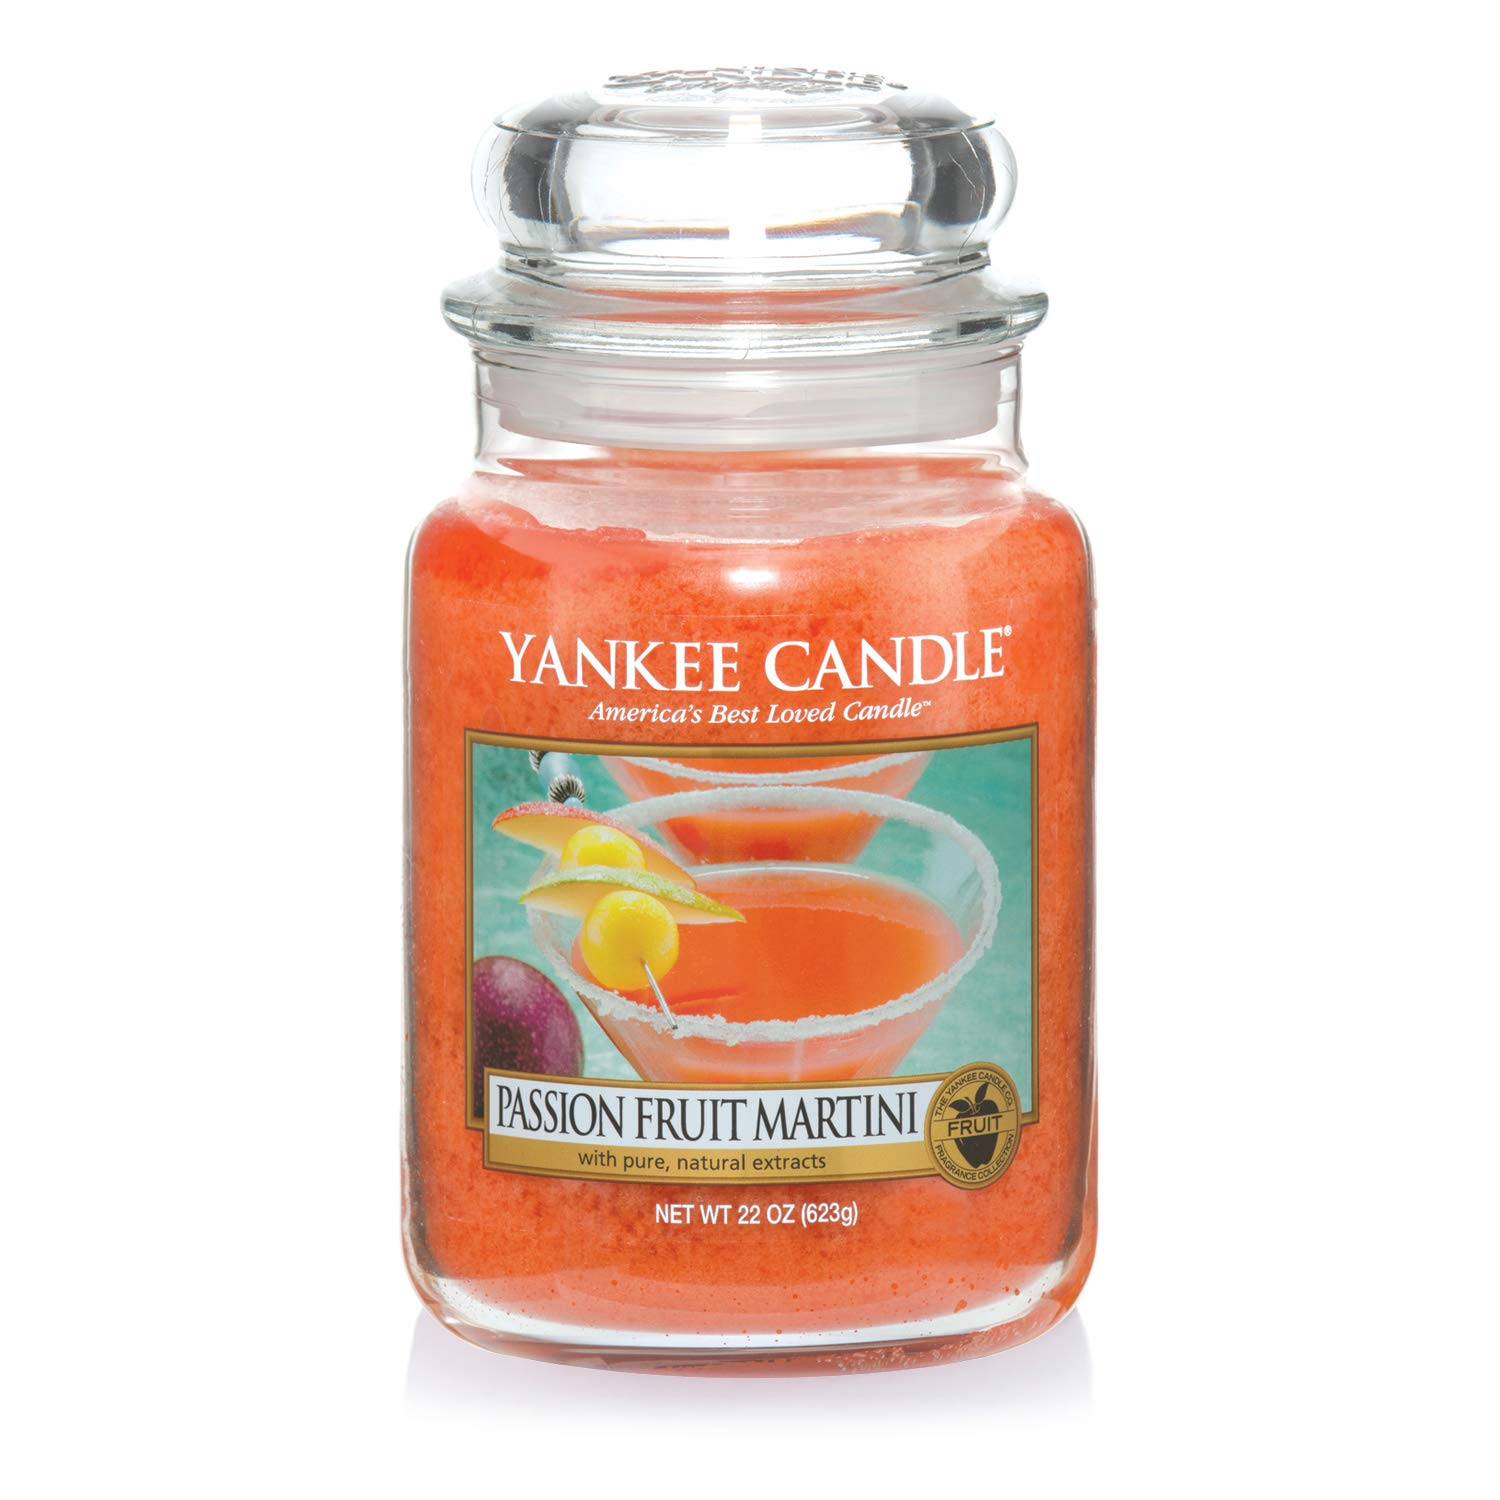 Yankee Candle Large Jar Scented Candle, Up to 150 Hours Burn Time